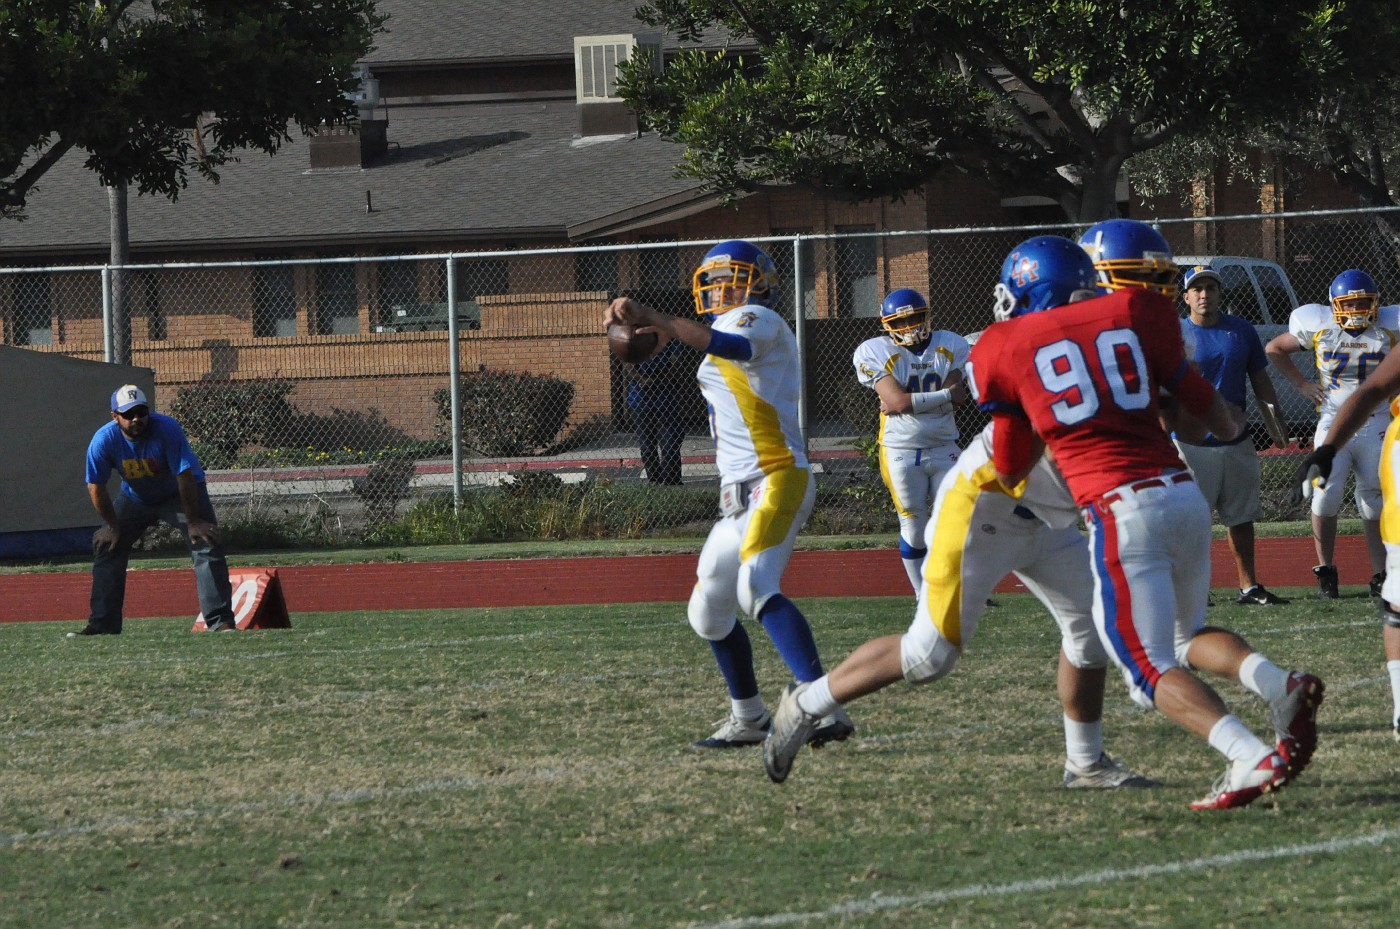 JV vs Los Al Lisa 254.jpg